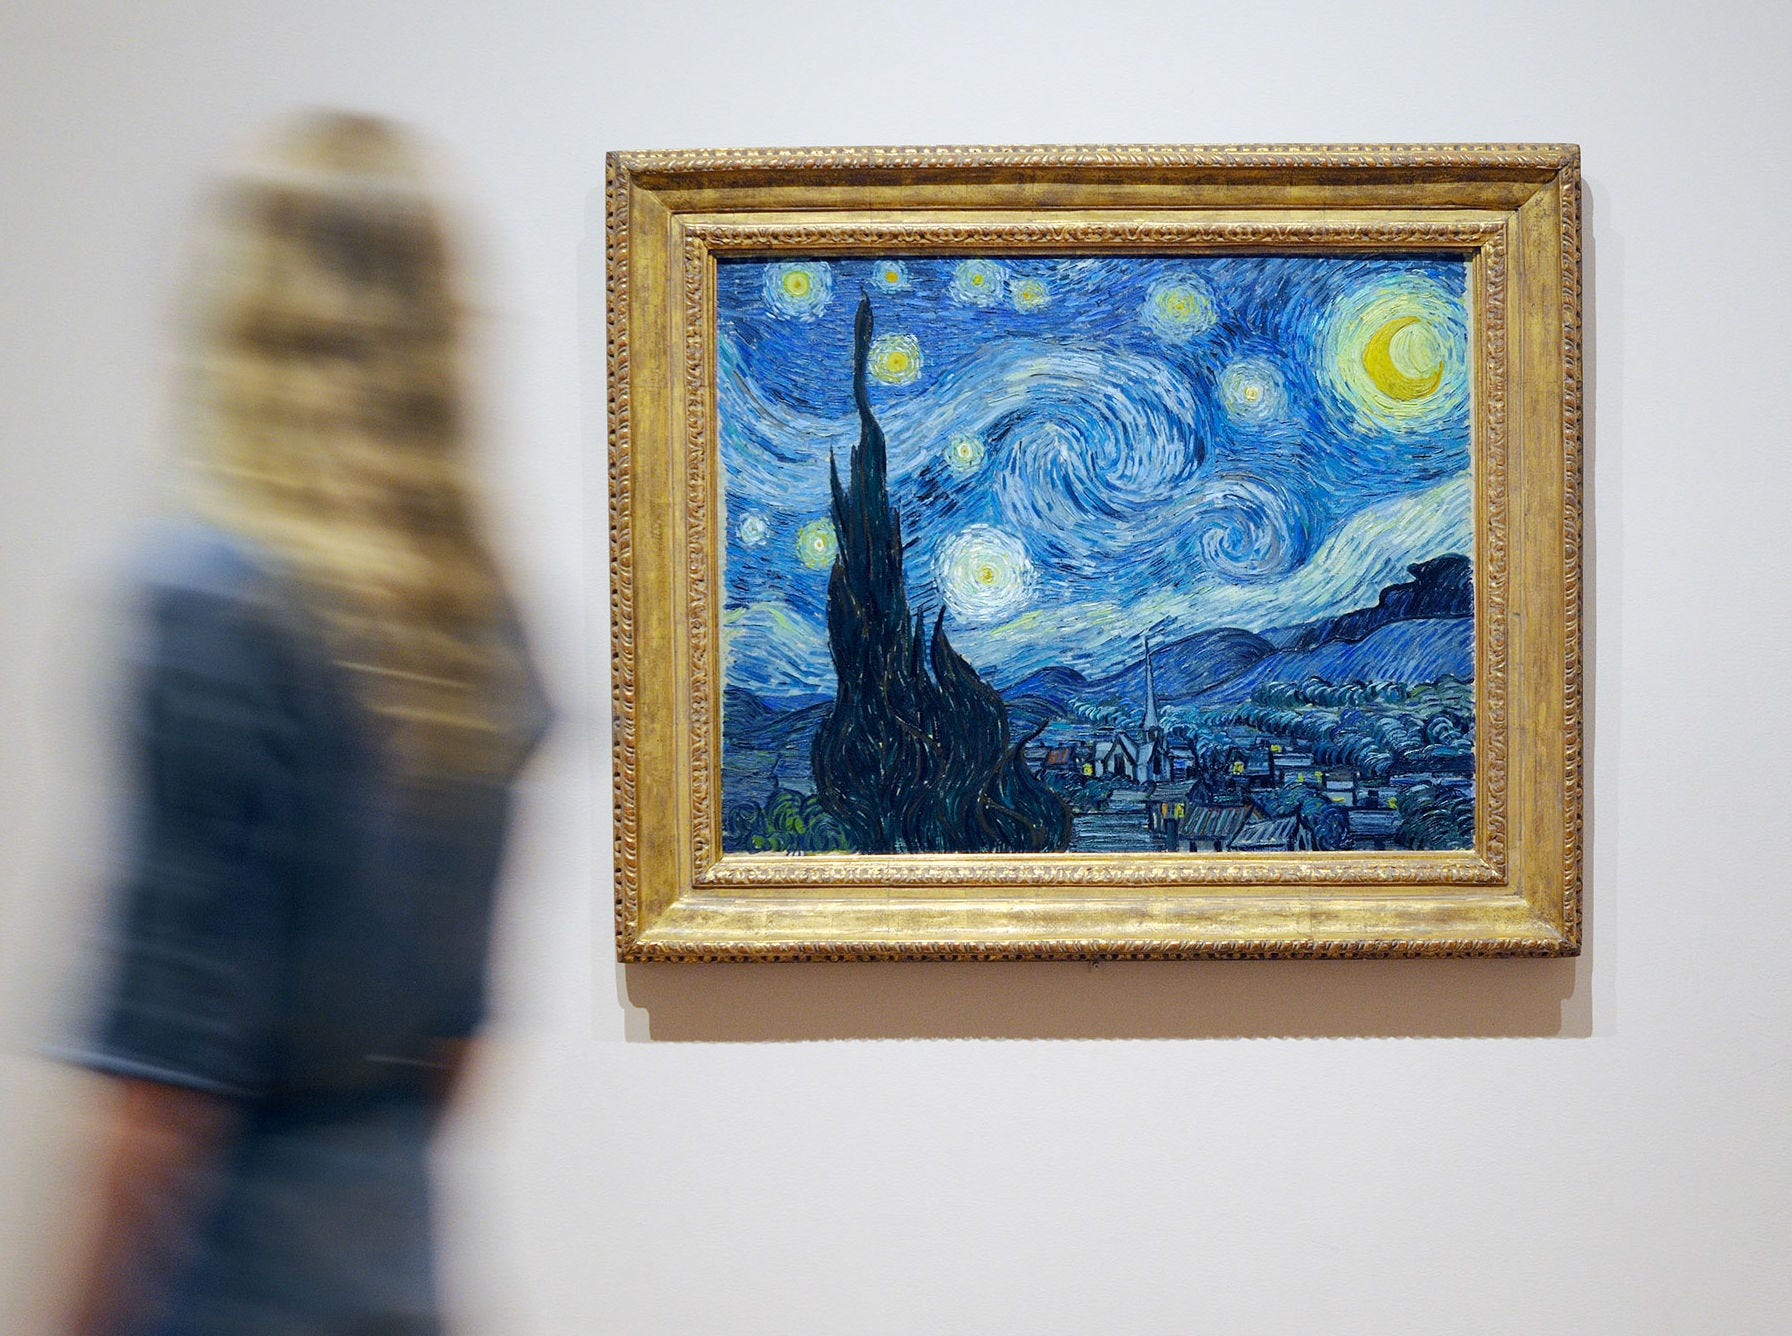 """The Starry Night"" by Van Gogh is displayed at the Museum of Modern Art, one of 57 discounted attractions during NYC Must-See Week."